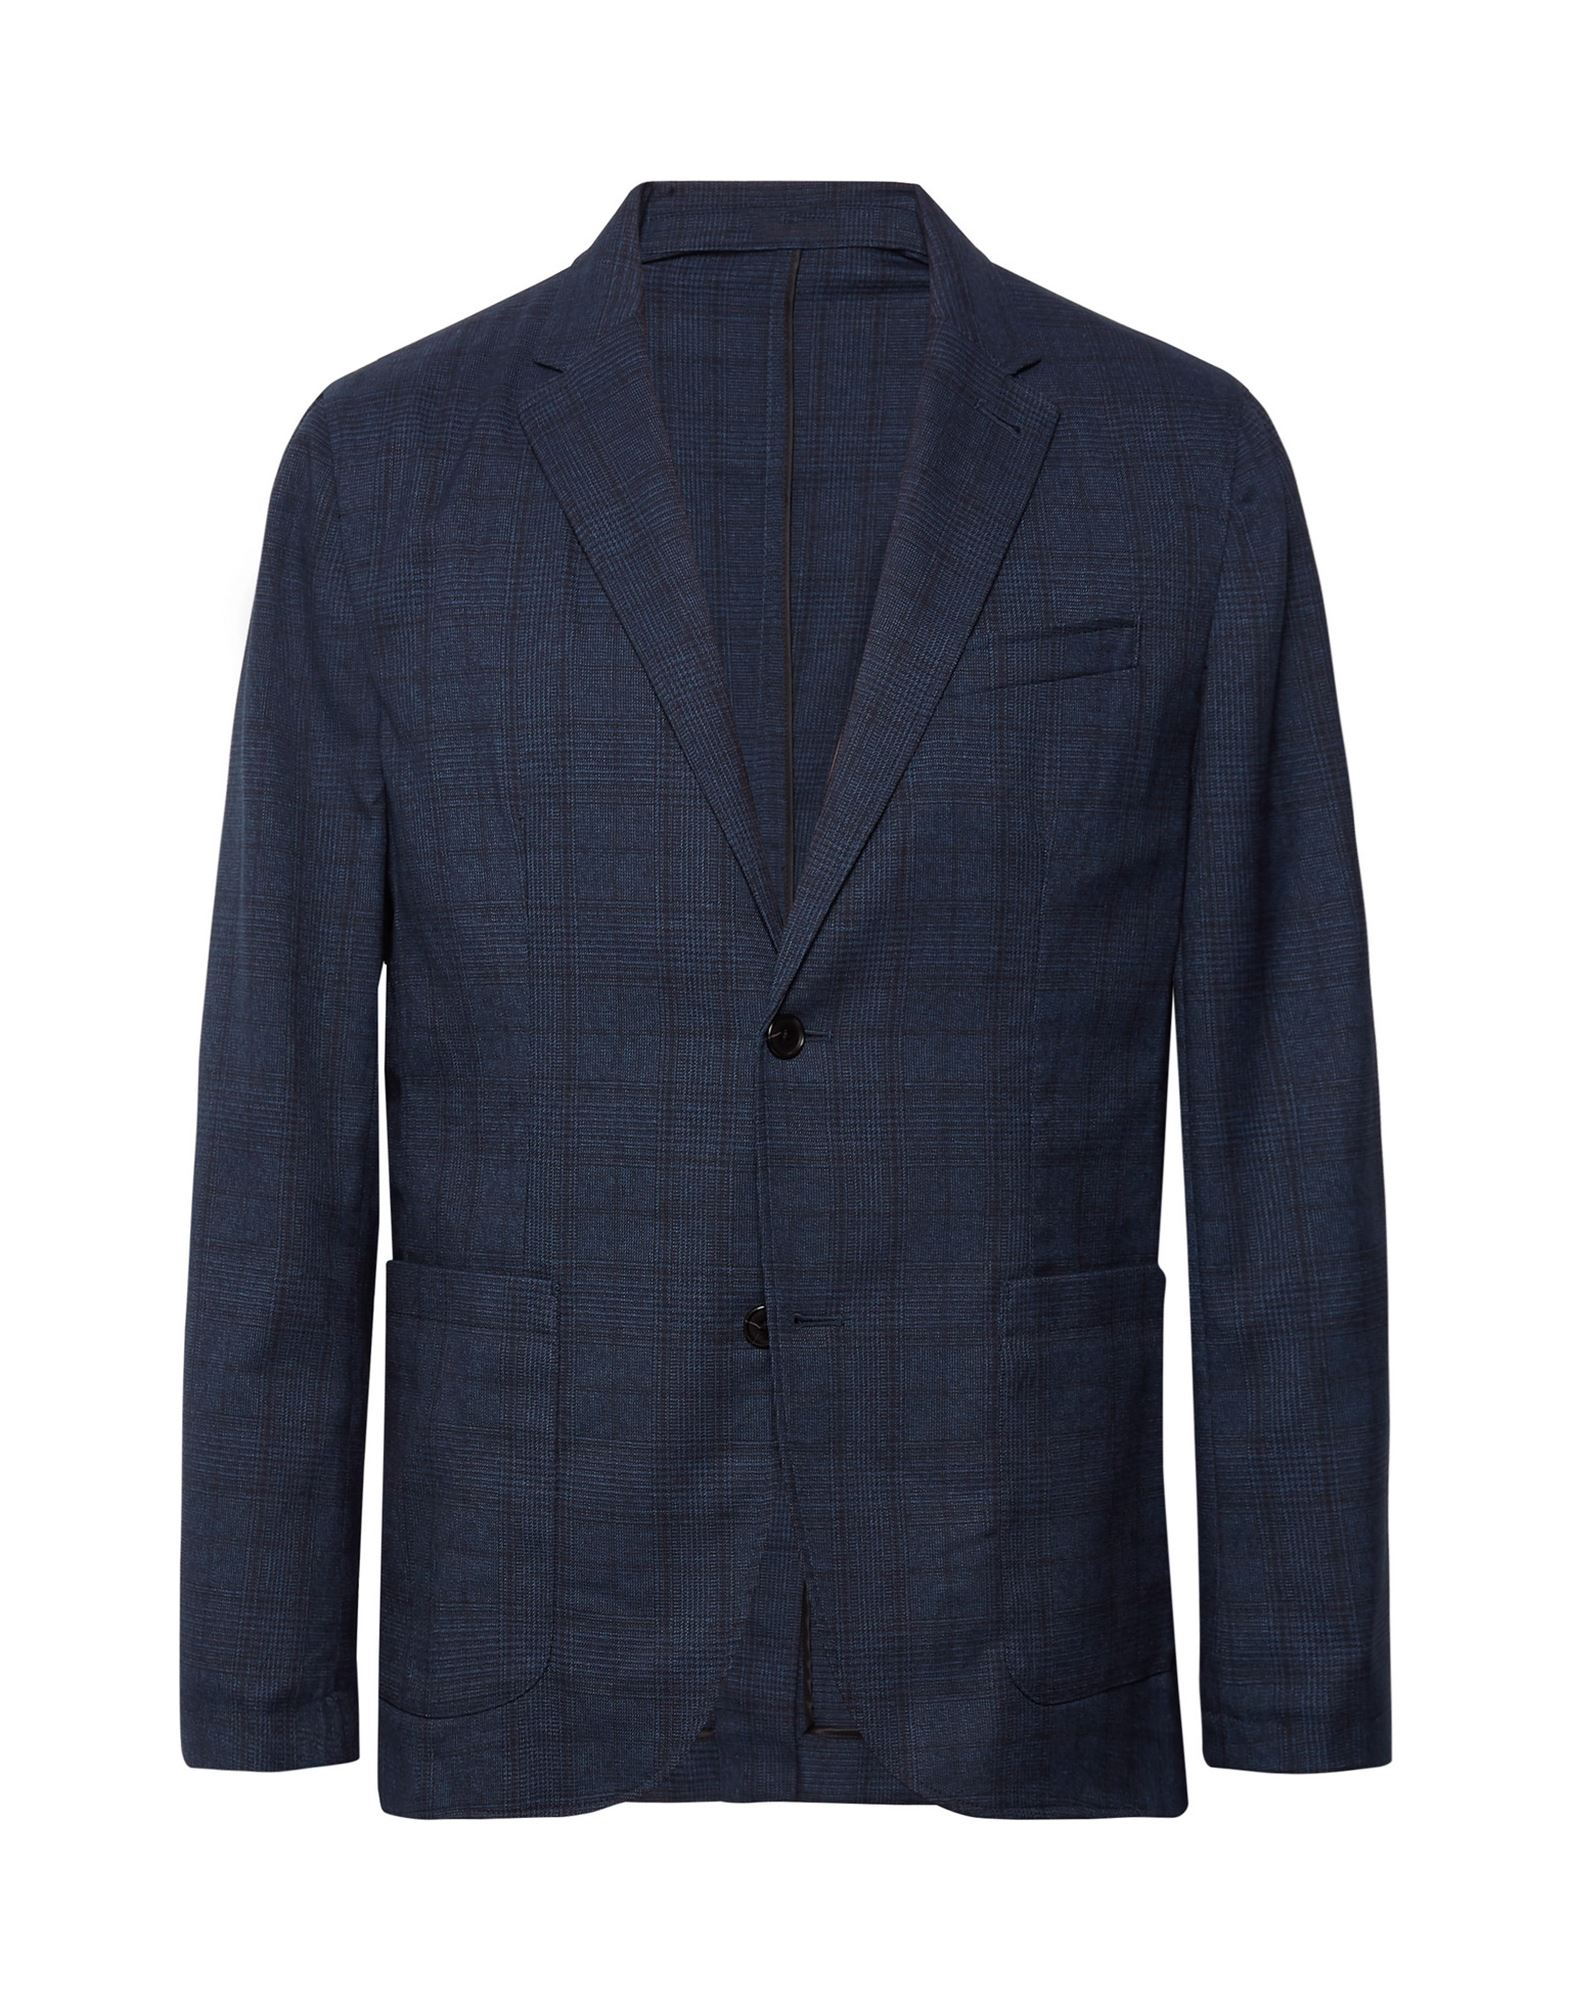 CLUB MONACO Suit jackets. plain weave, no appliqués, glen plaid, lapel collar, long sleeves, single-breasted, multipockets, button closing, single chest pocket, one inside pocket, unlined, back split, stretch. 64% Polyester, 34% Viscose, 2% Elastane